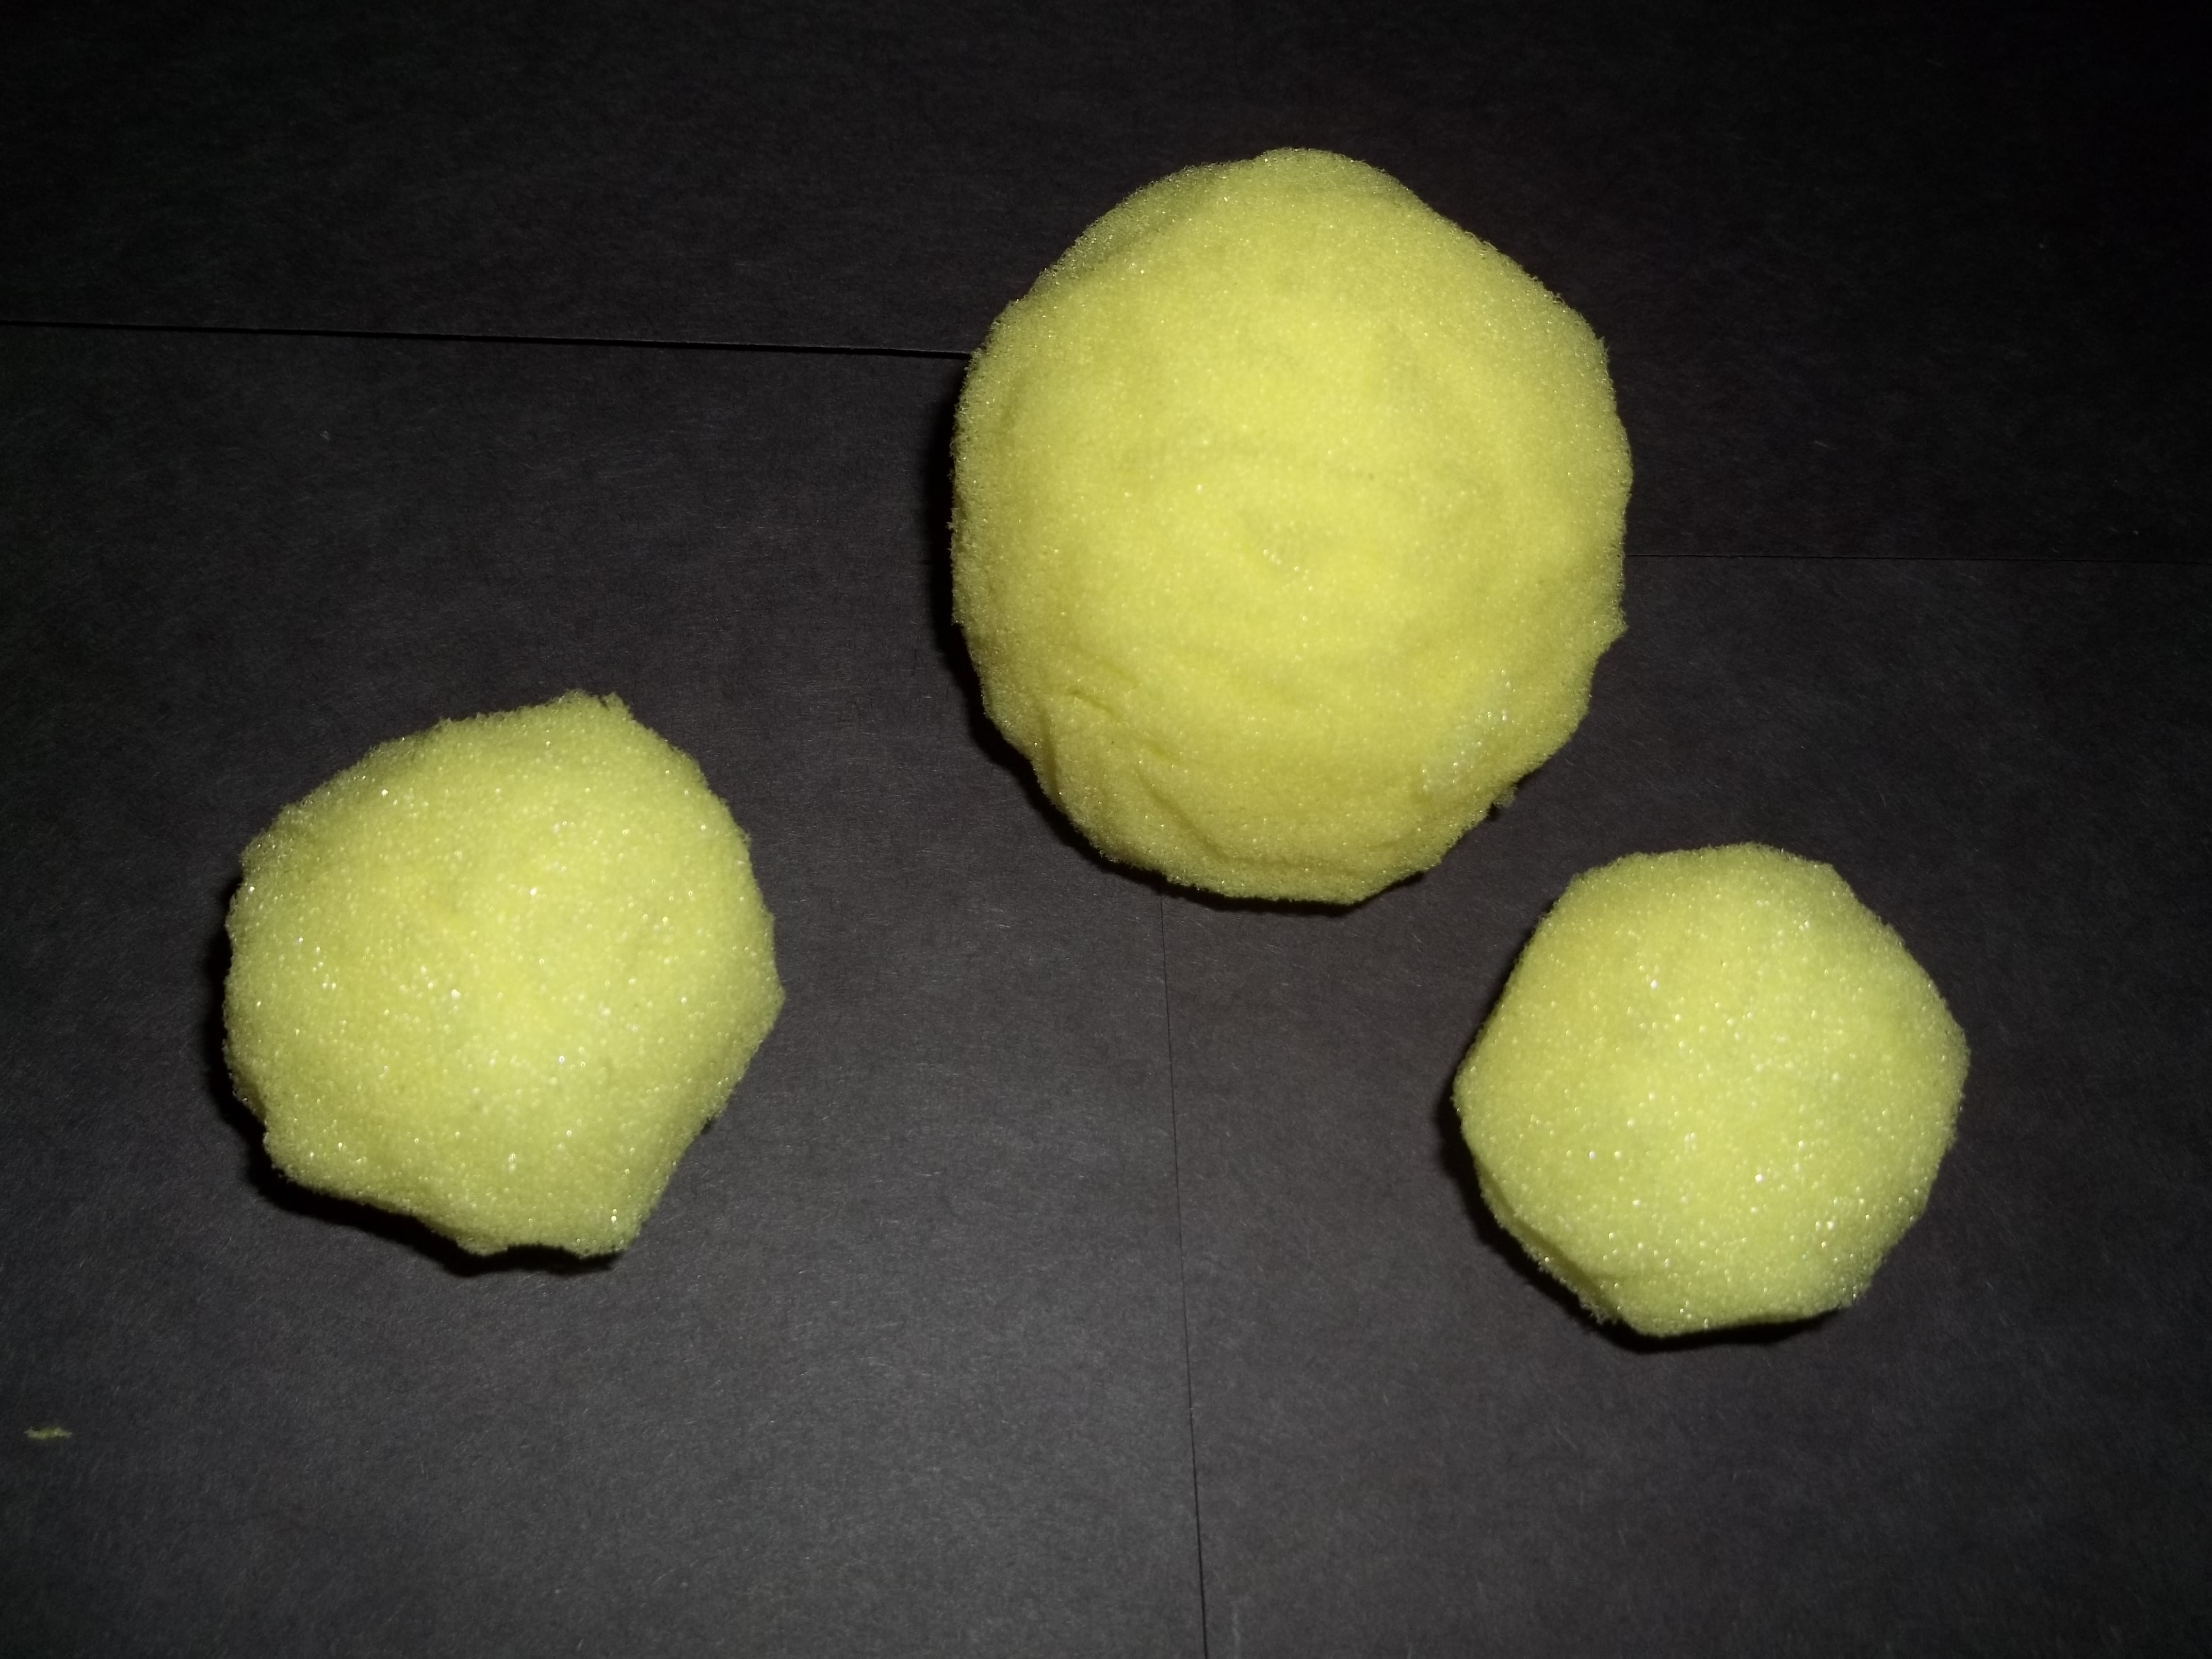 Picture of Turn a Cleaning Sponge Into a Stunning Magic Trick!